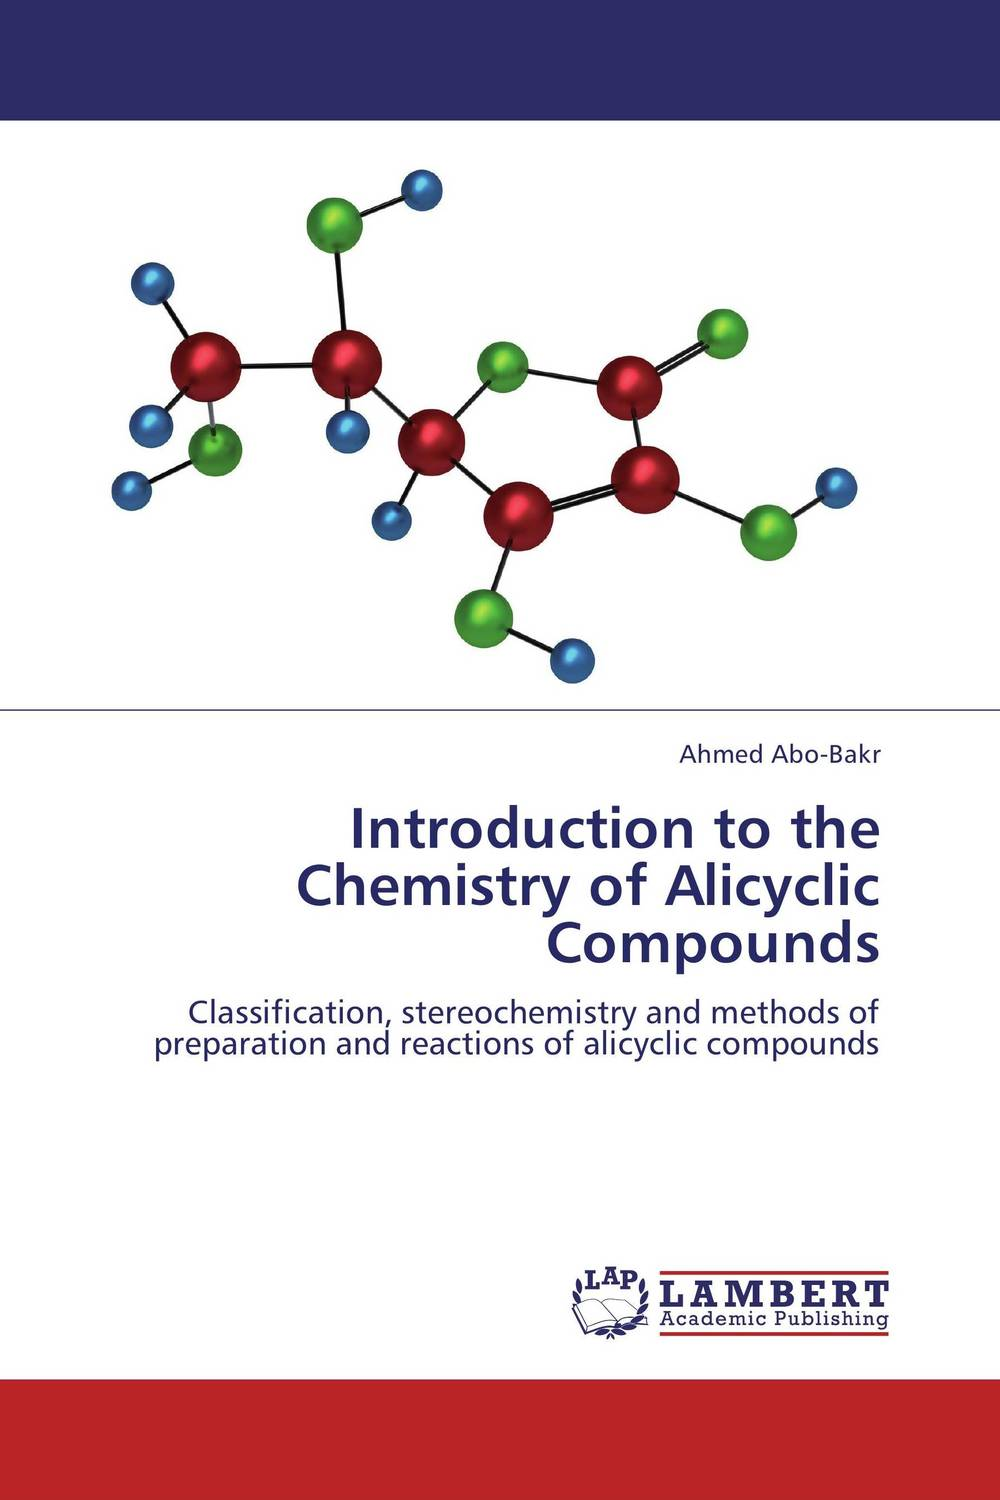 Introduction to the Chemistry of Alicyclic Compounds d beskrovniy chemistry technology and properties of synthetic rubber